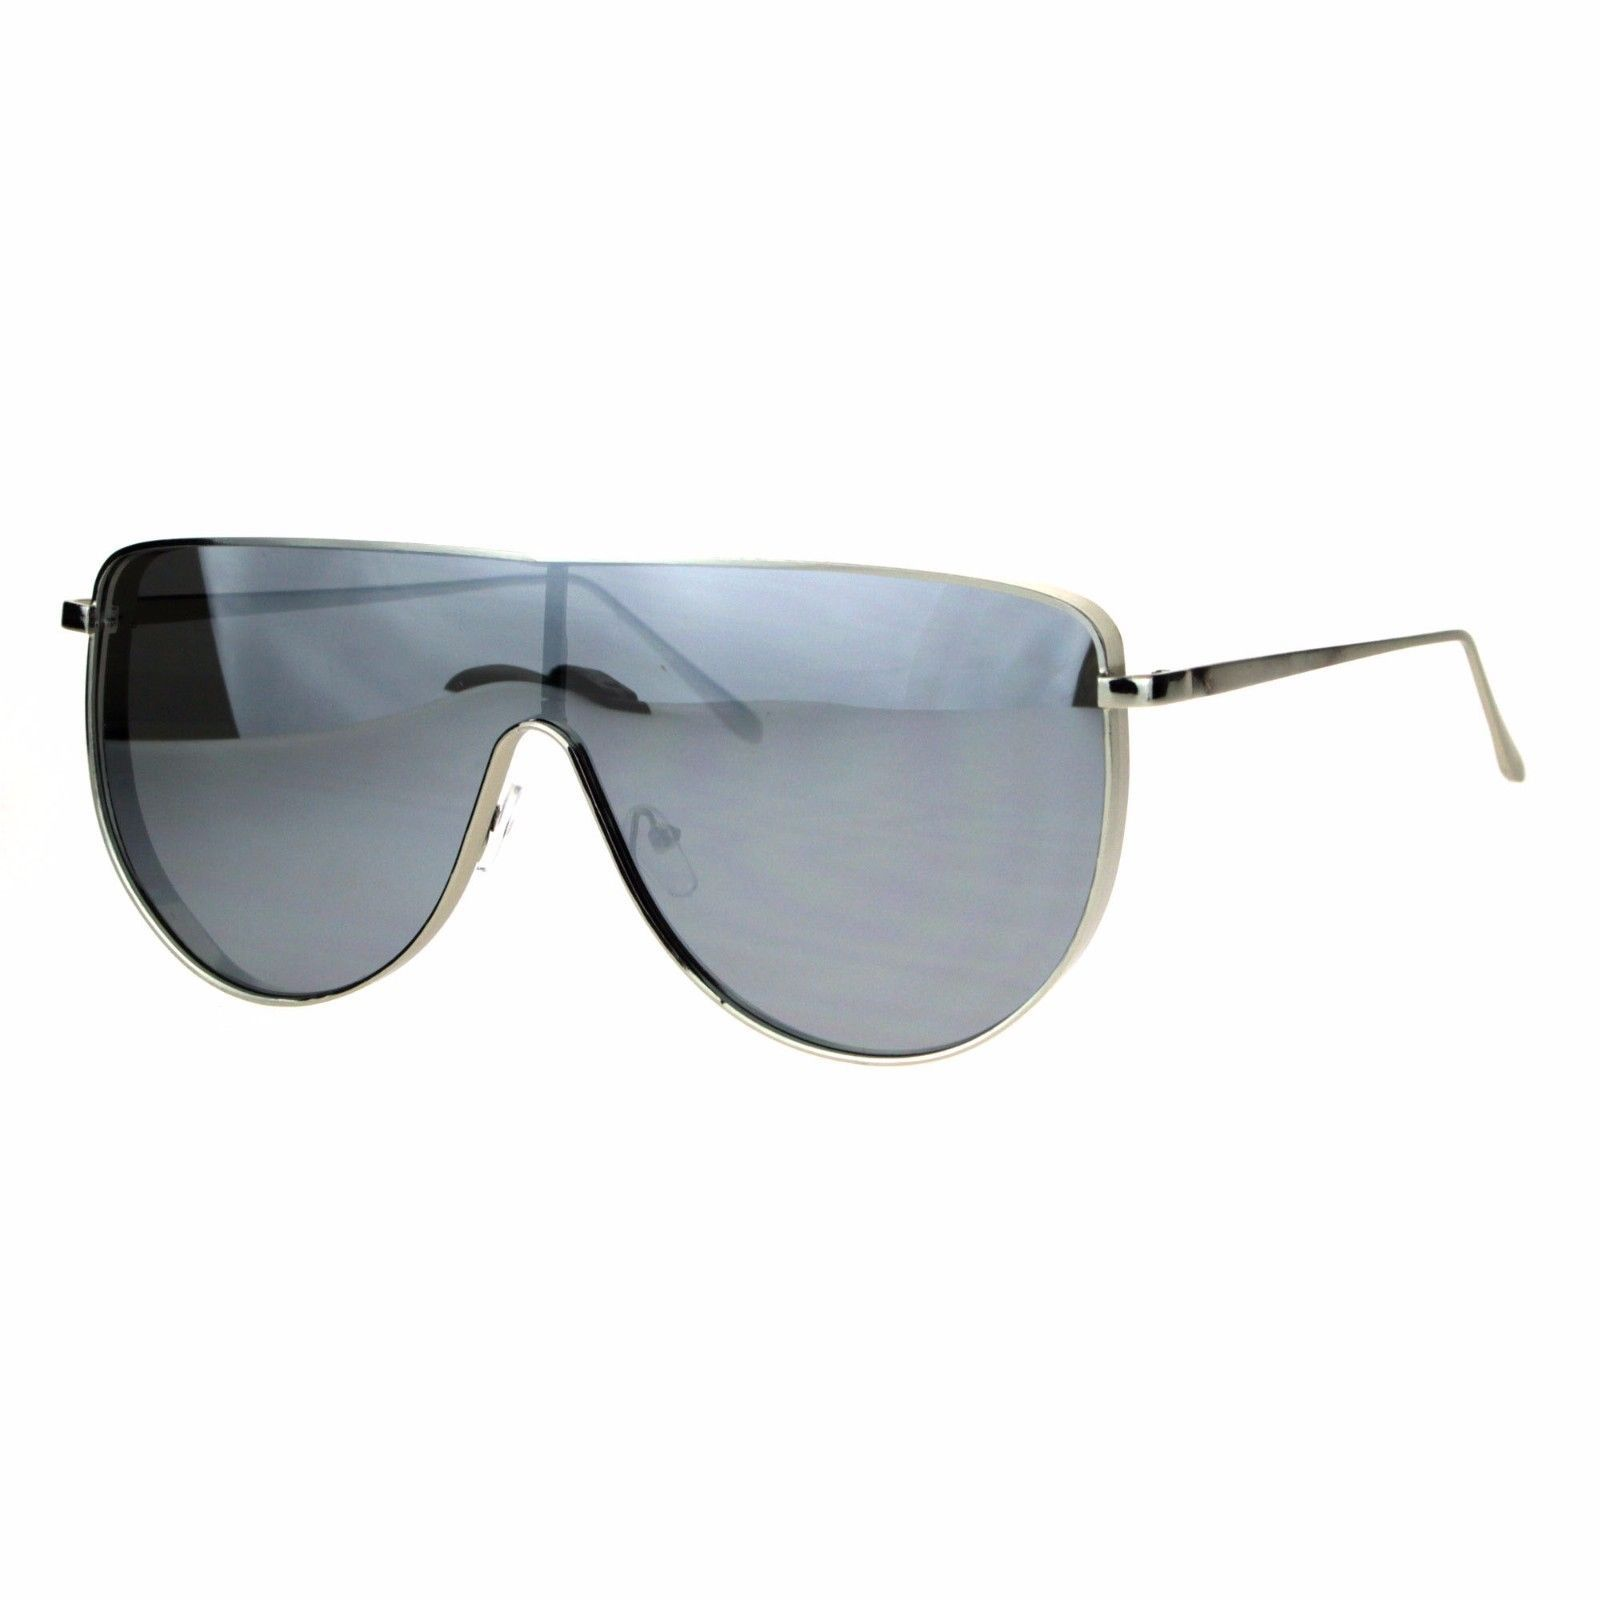 Oversized Shield Fashion Sunglasses Flat Top Metal Frame Mirror Lens